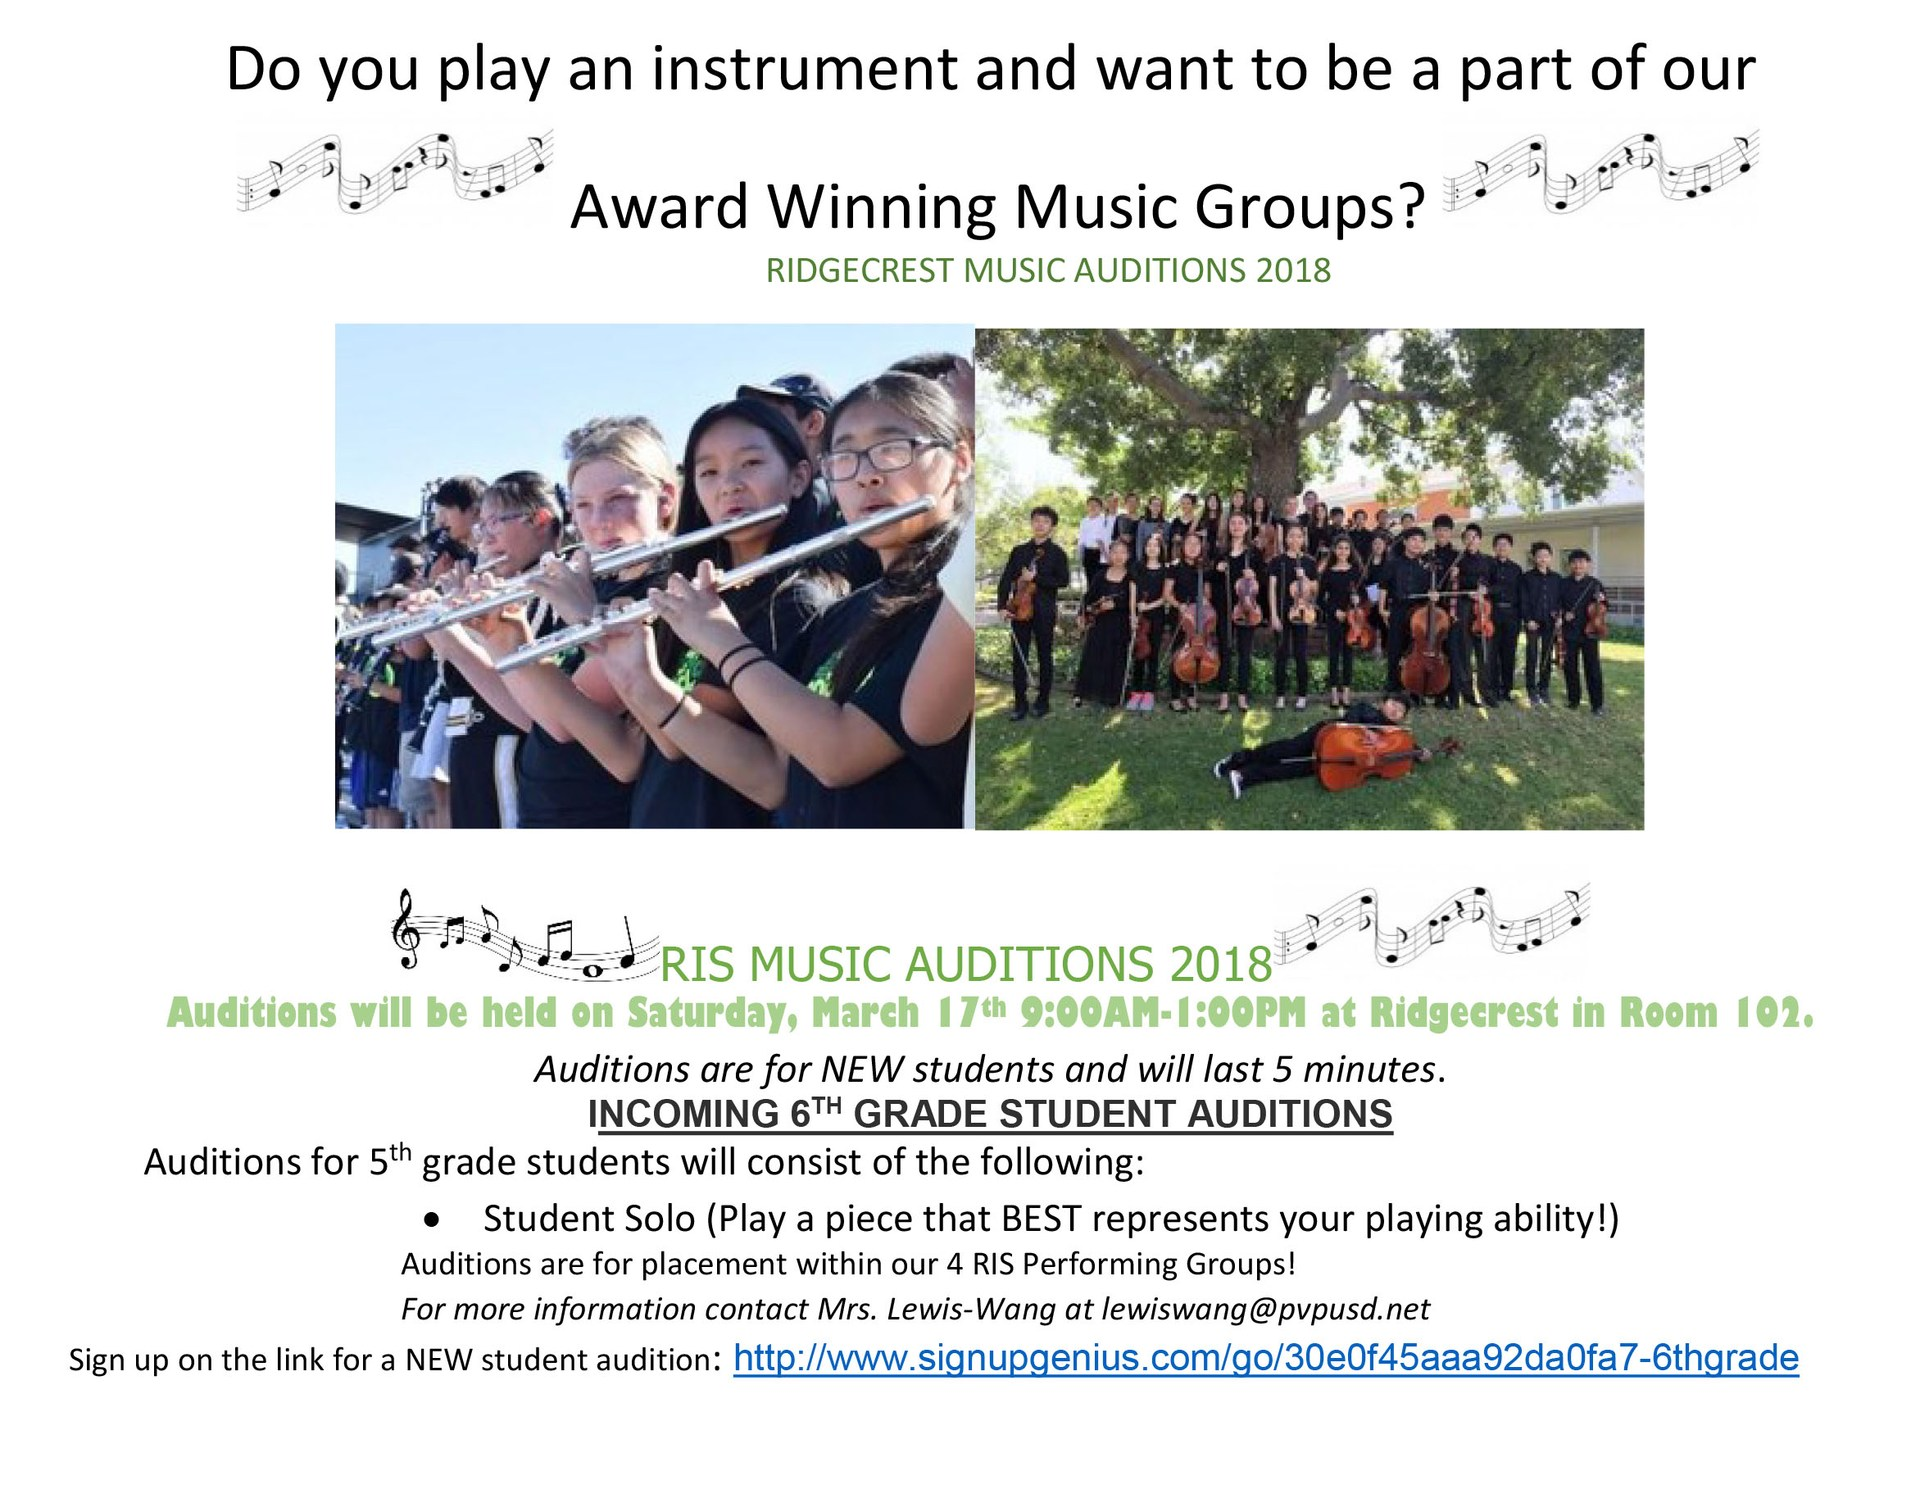 RIS Music Auditions